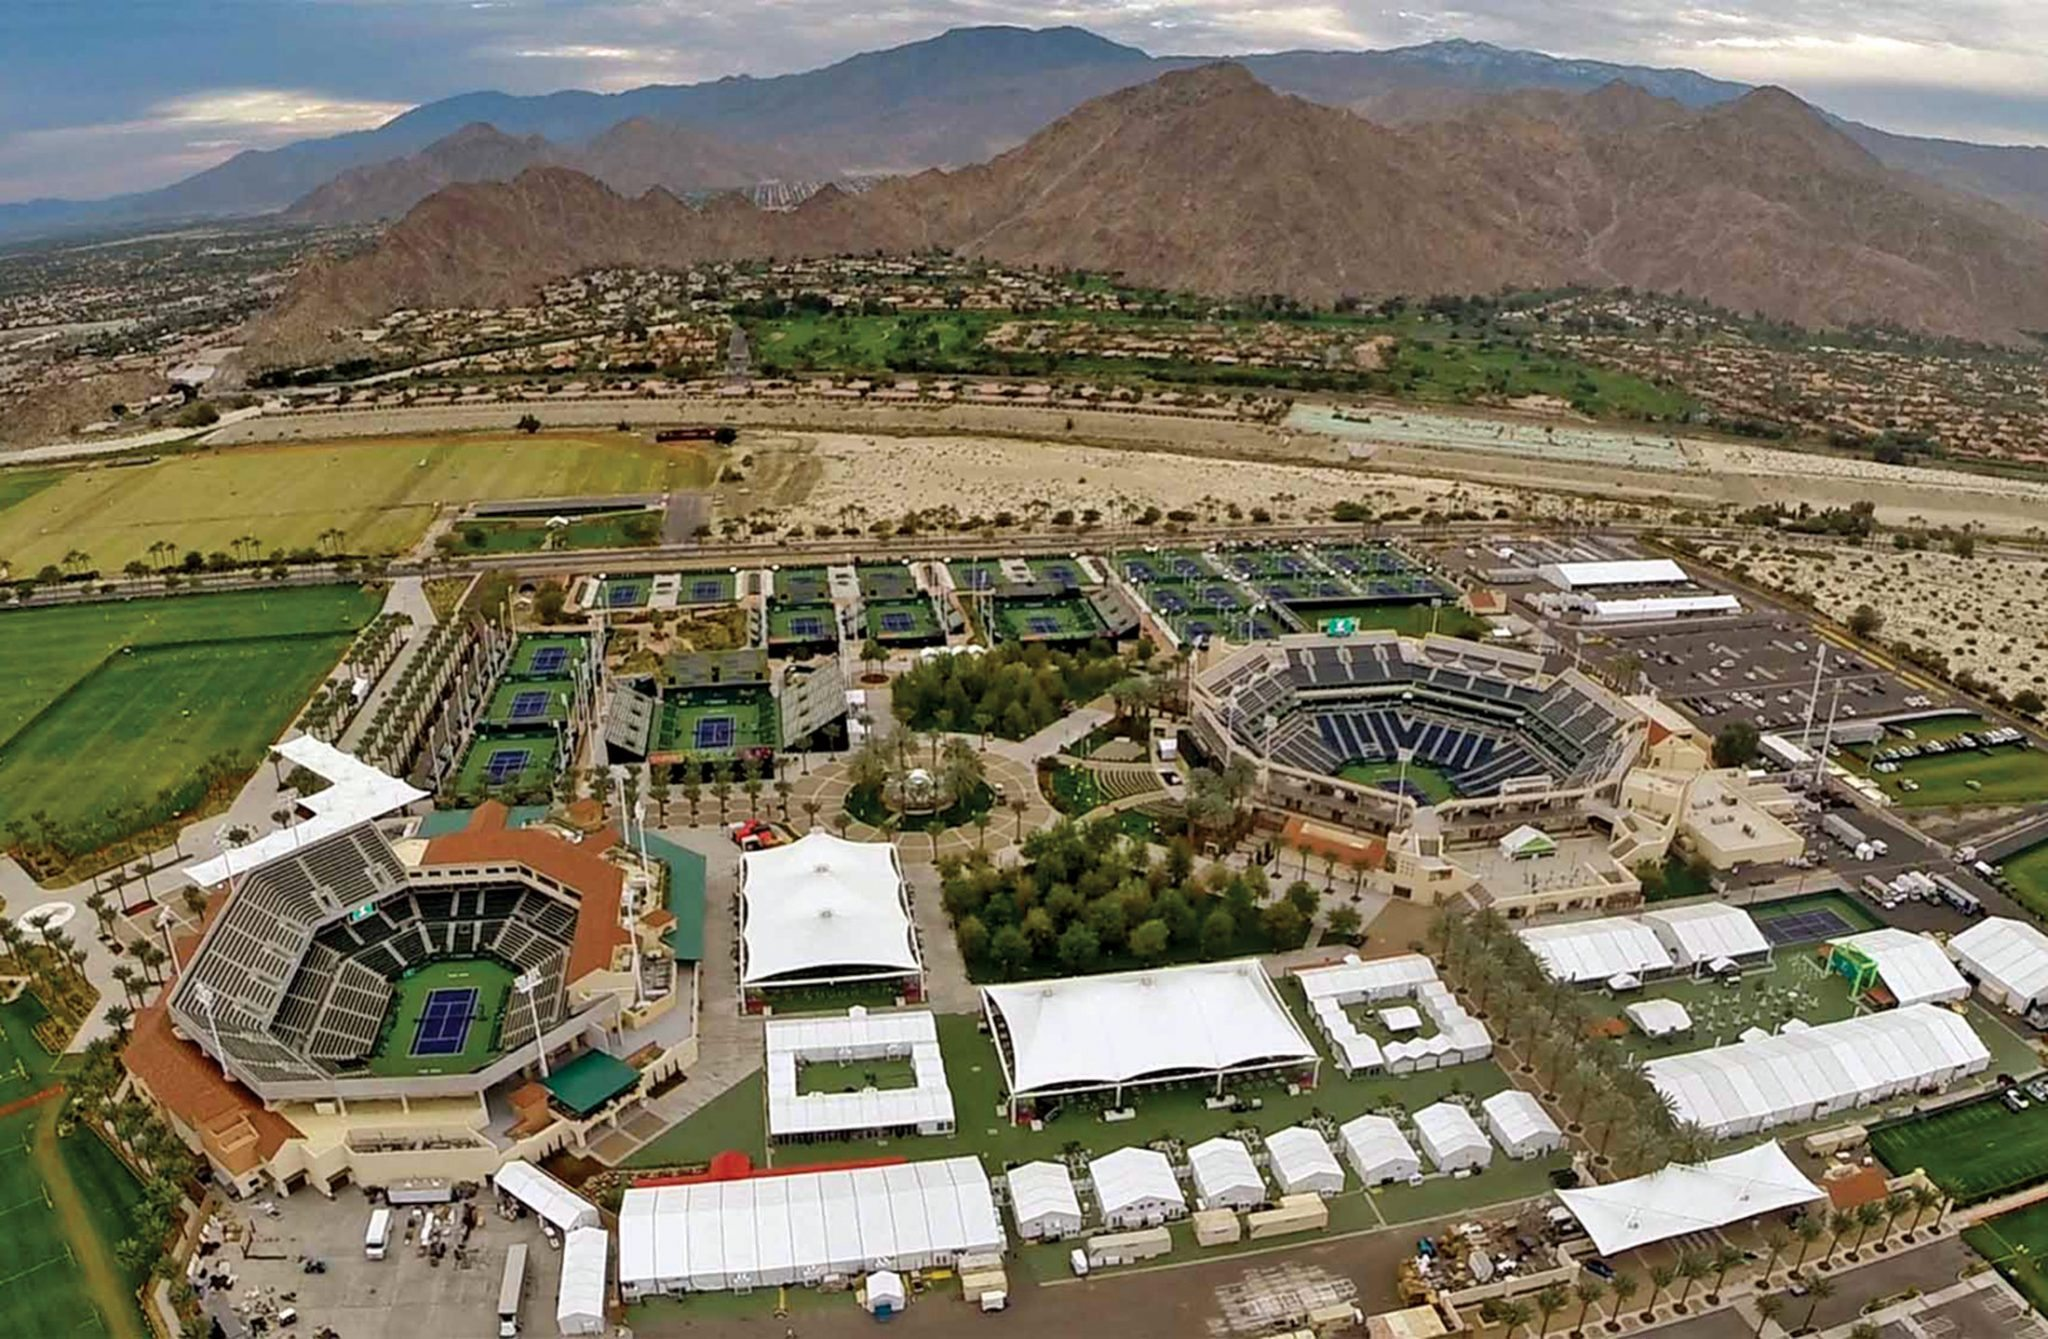 Indian Wells Tennis Garden Aerial View